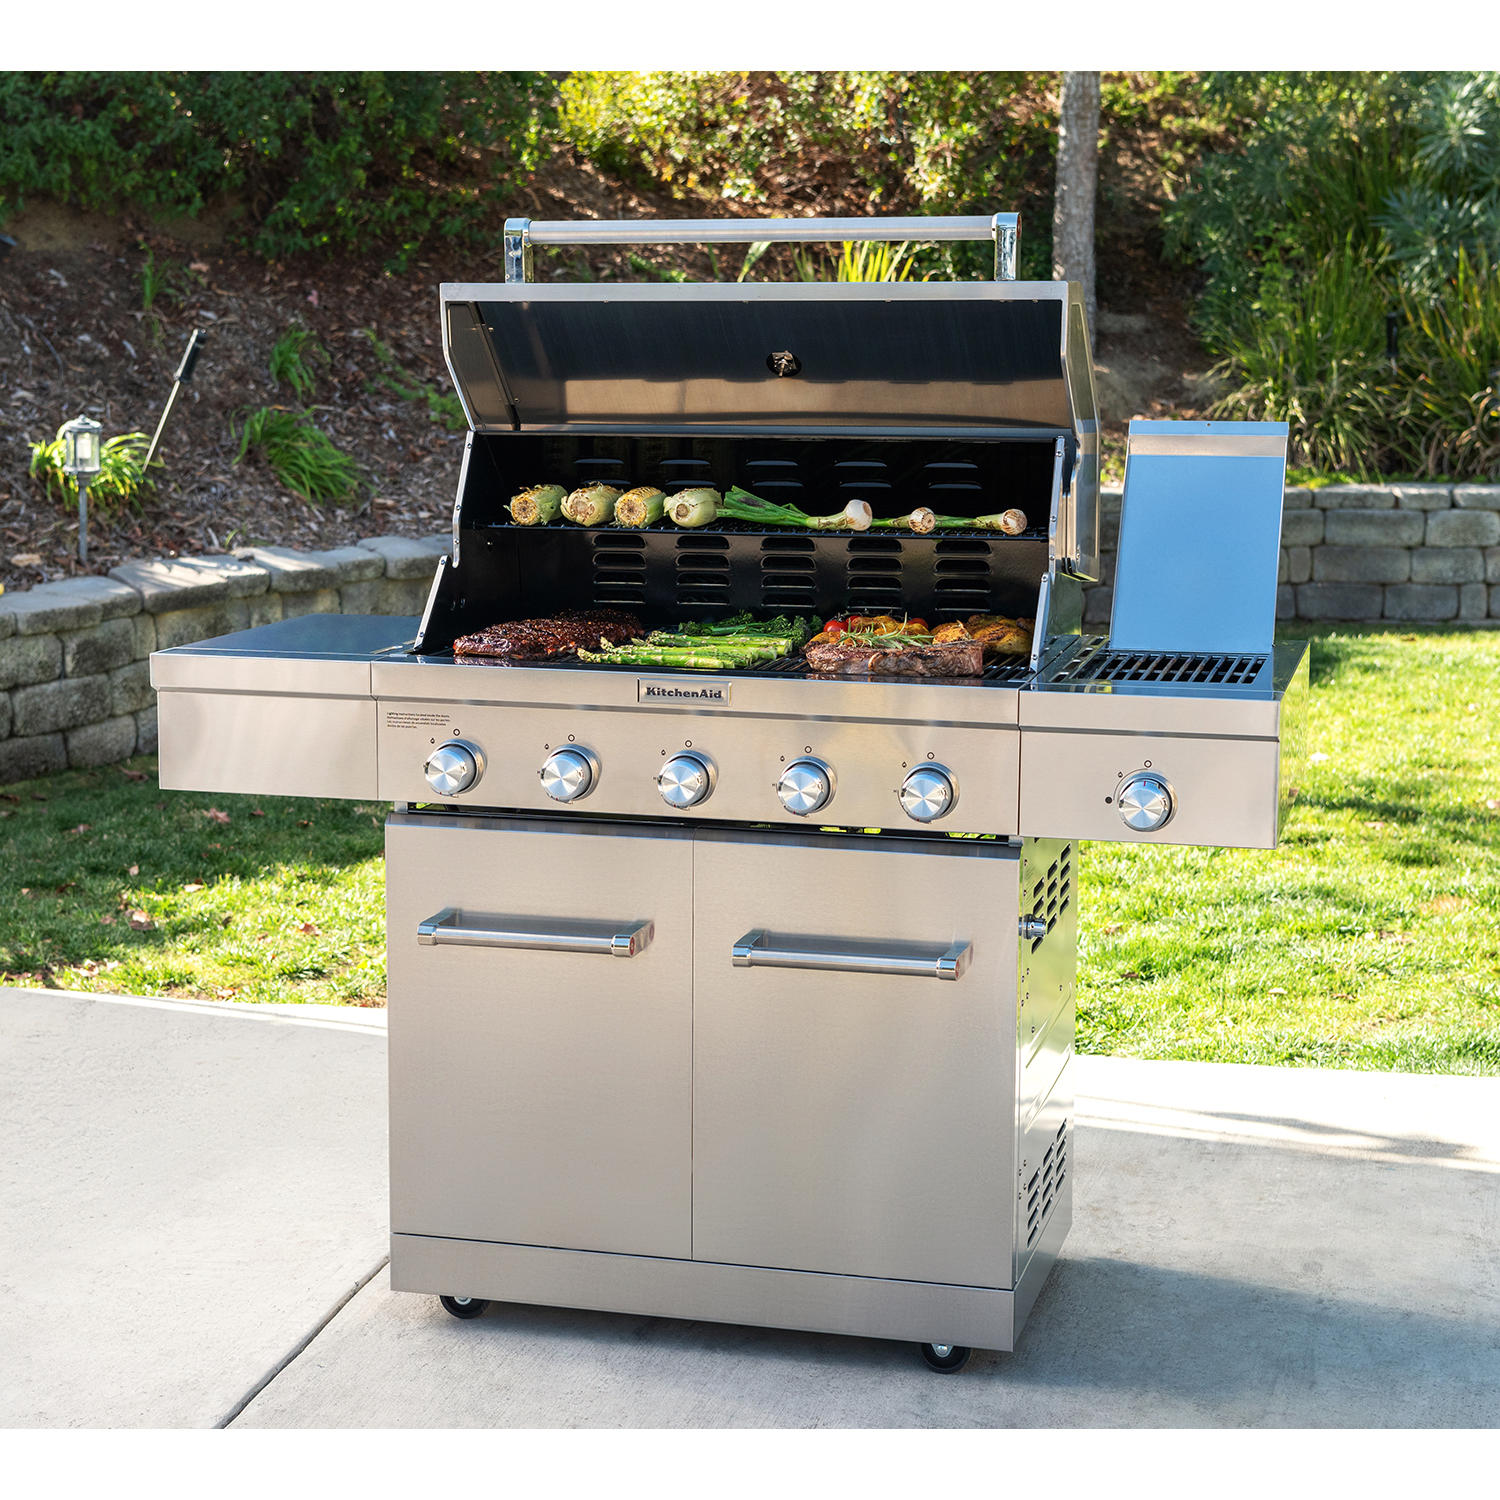 KitchenAid 5-Burner Propane Gas Grill with Ceramic Searing Side Burner